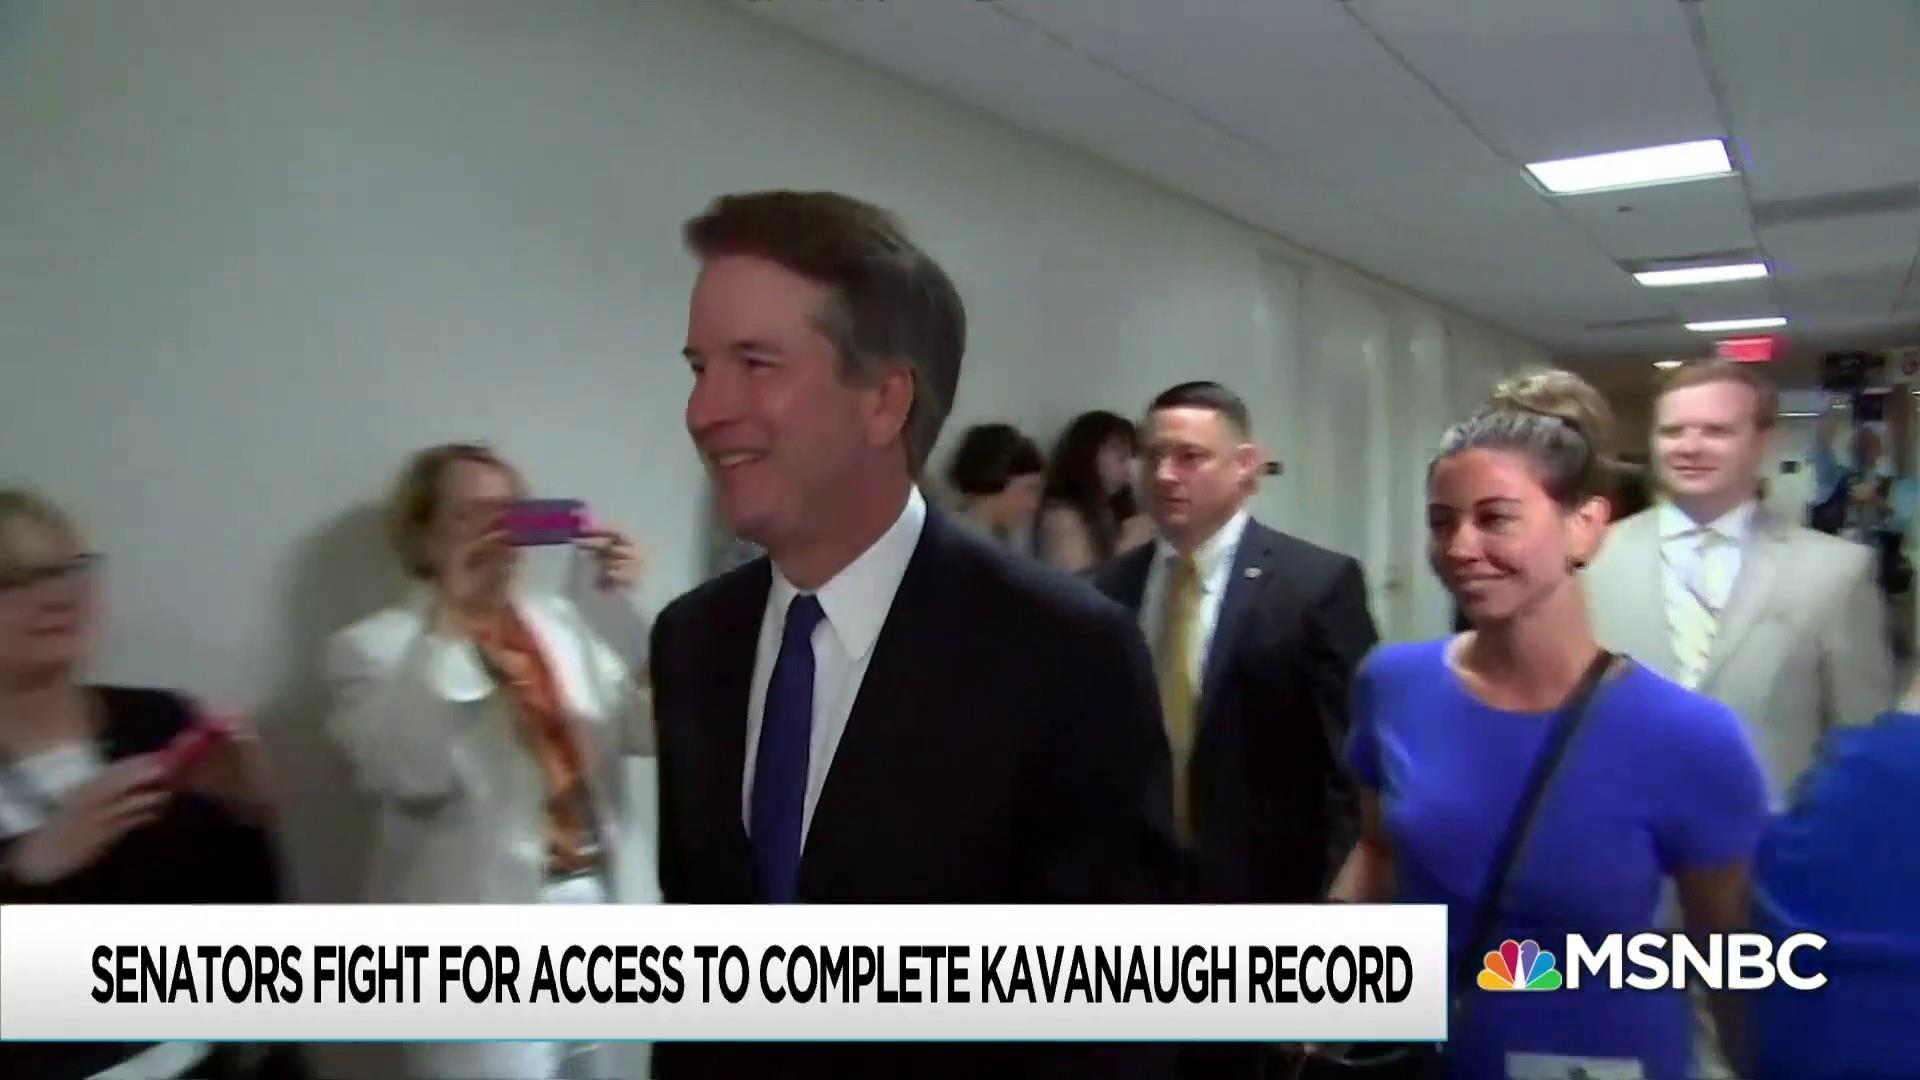 Senate Democrats say documents show Kavanaugh lied under oath